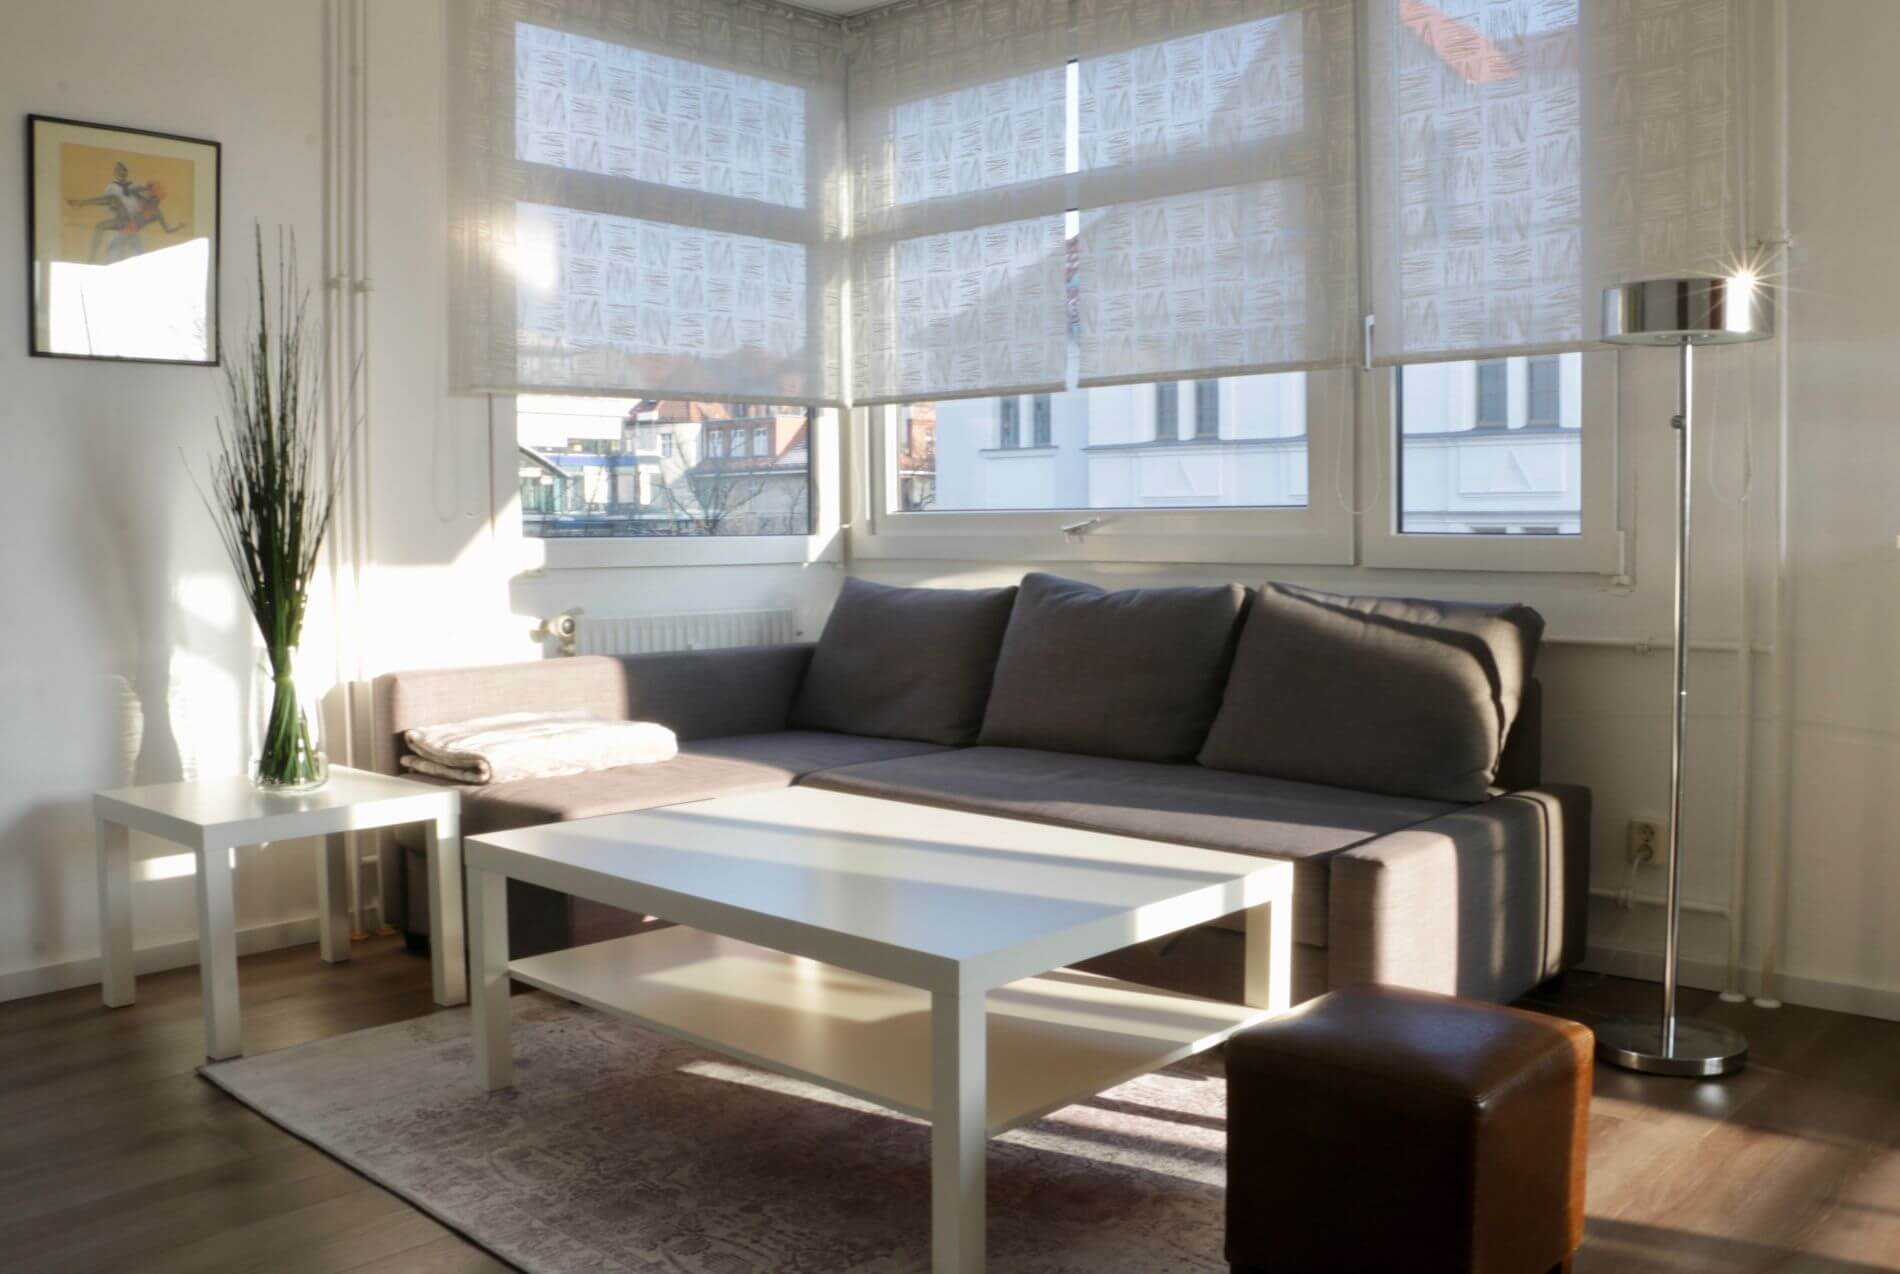 Fully equipped apartment in Berlin with a balcony